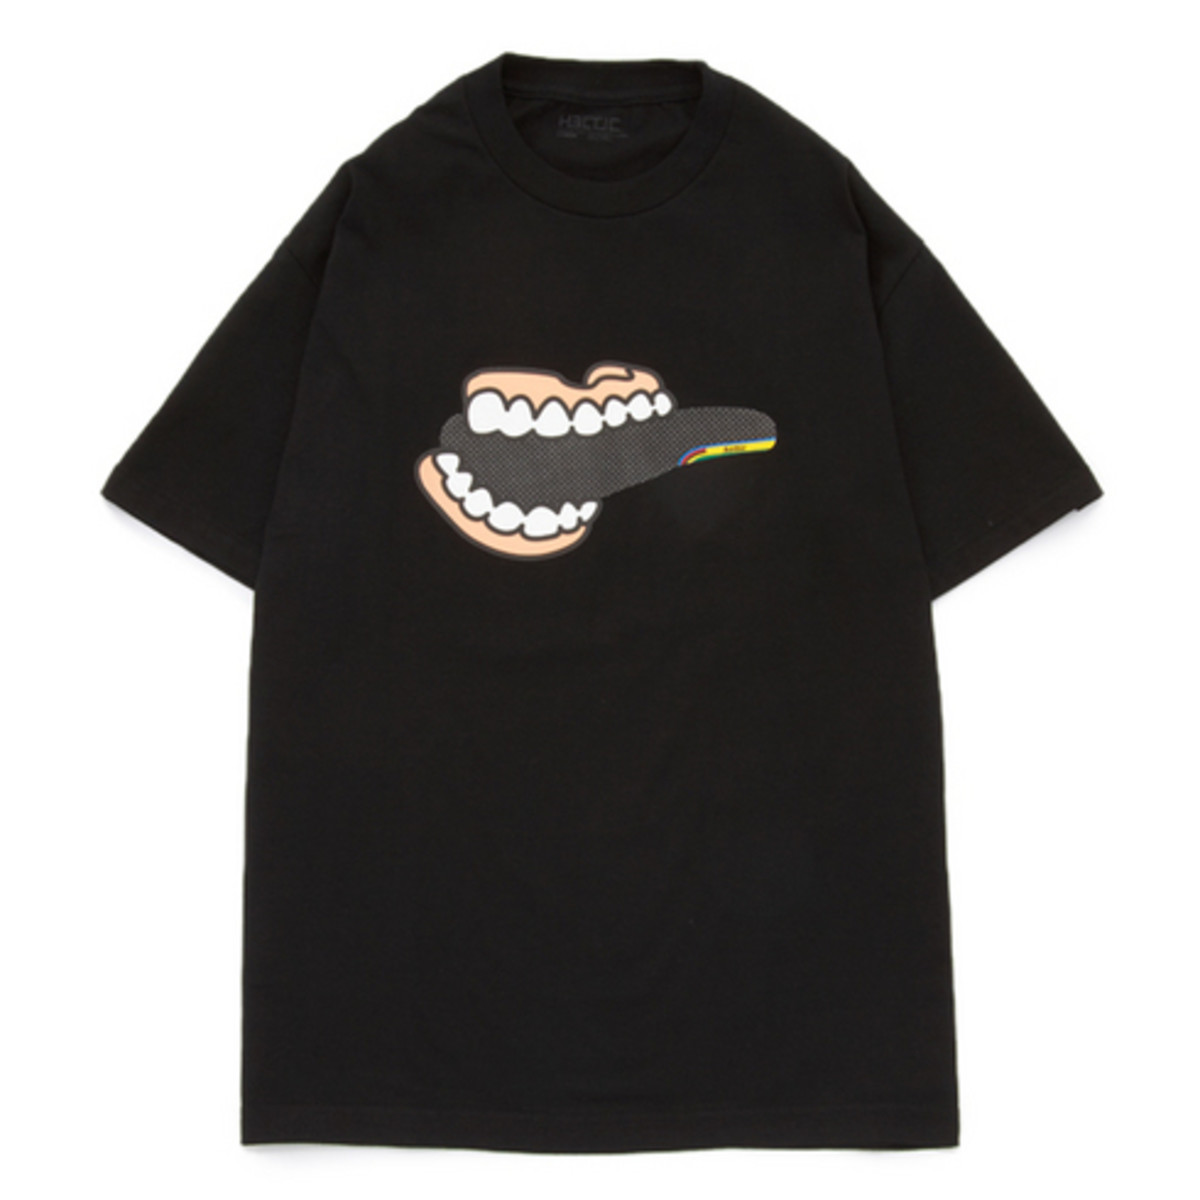 Rolling Suddles T-Shirt Black